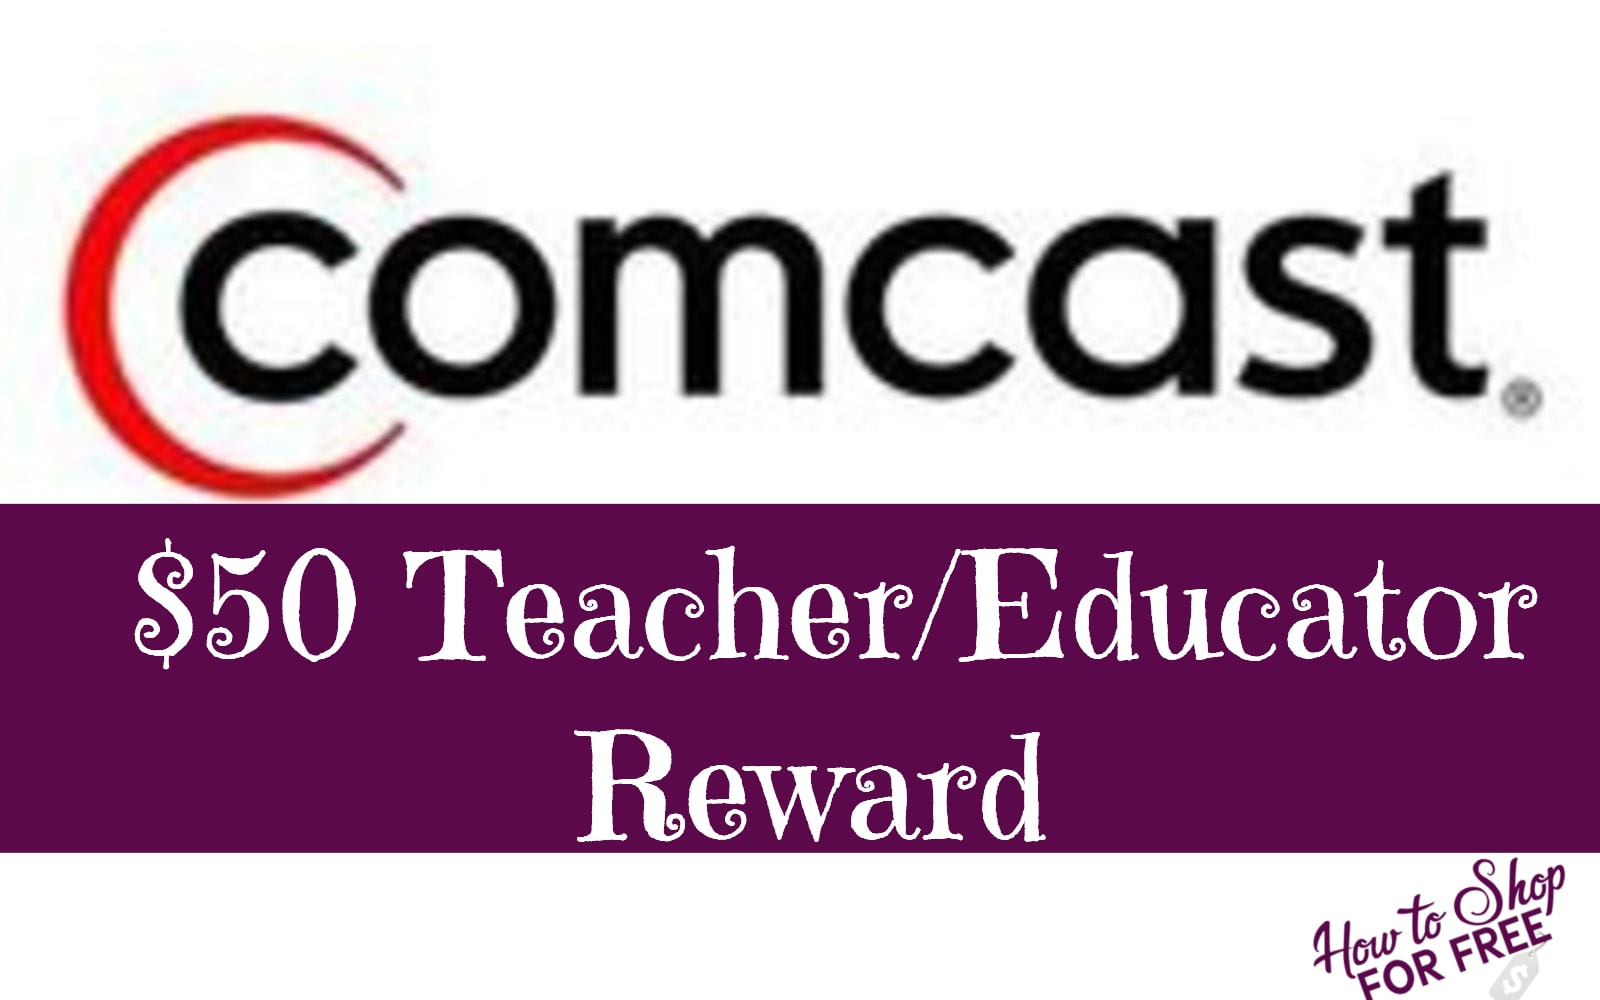 Free 50 Visa Card From Comcast For Teachers Now Through 9 30 How To Shop For Free With Kathy Spencer